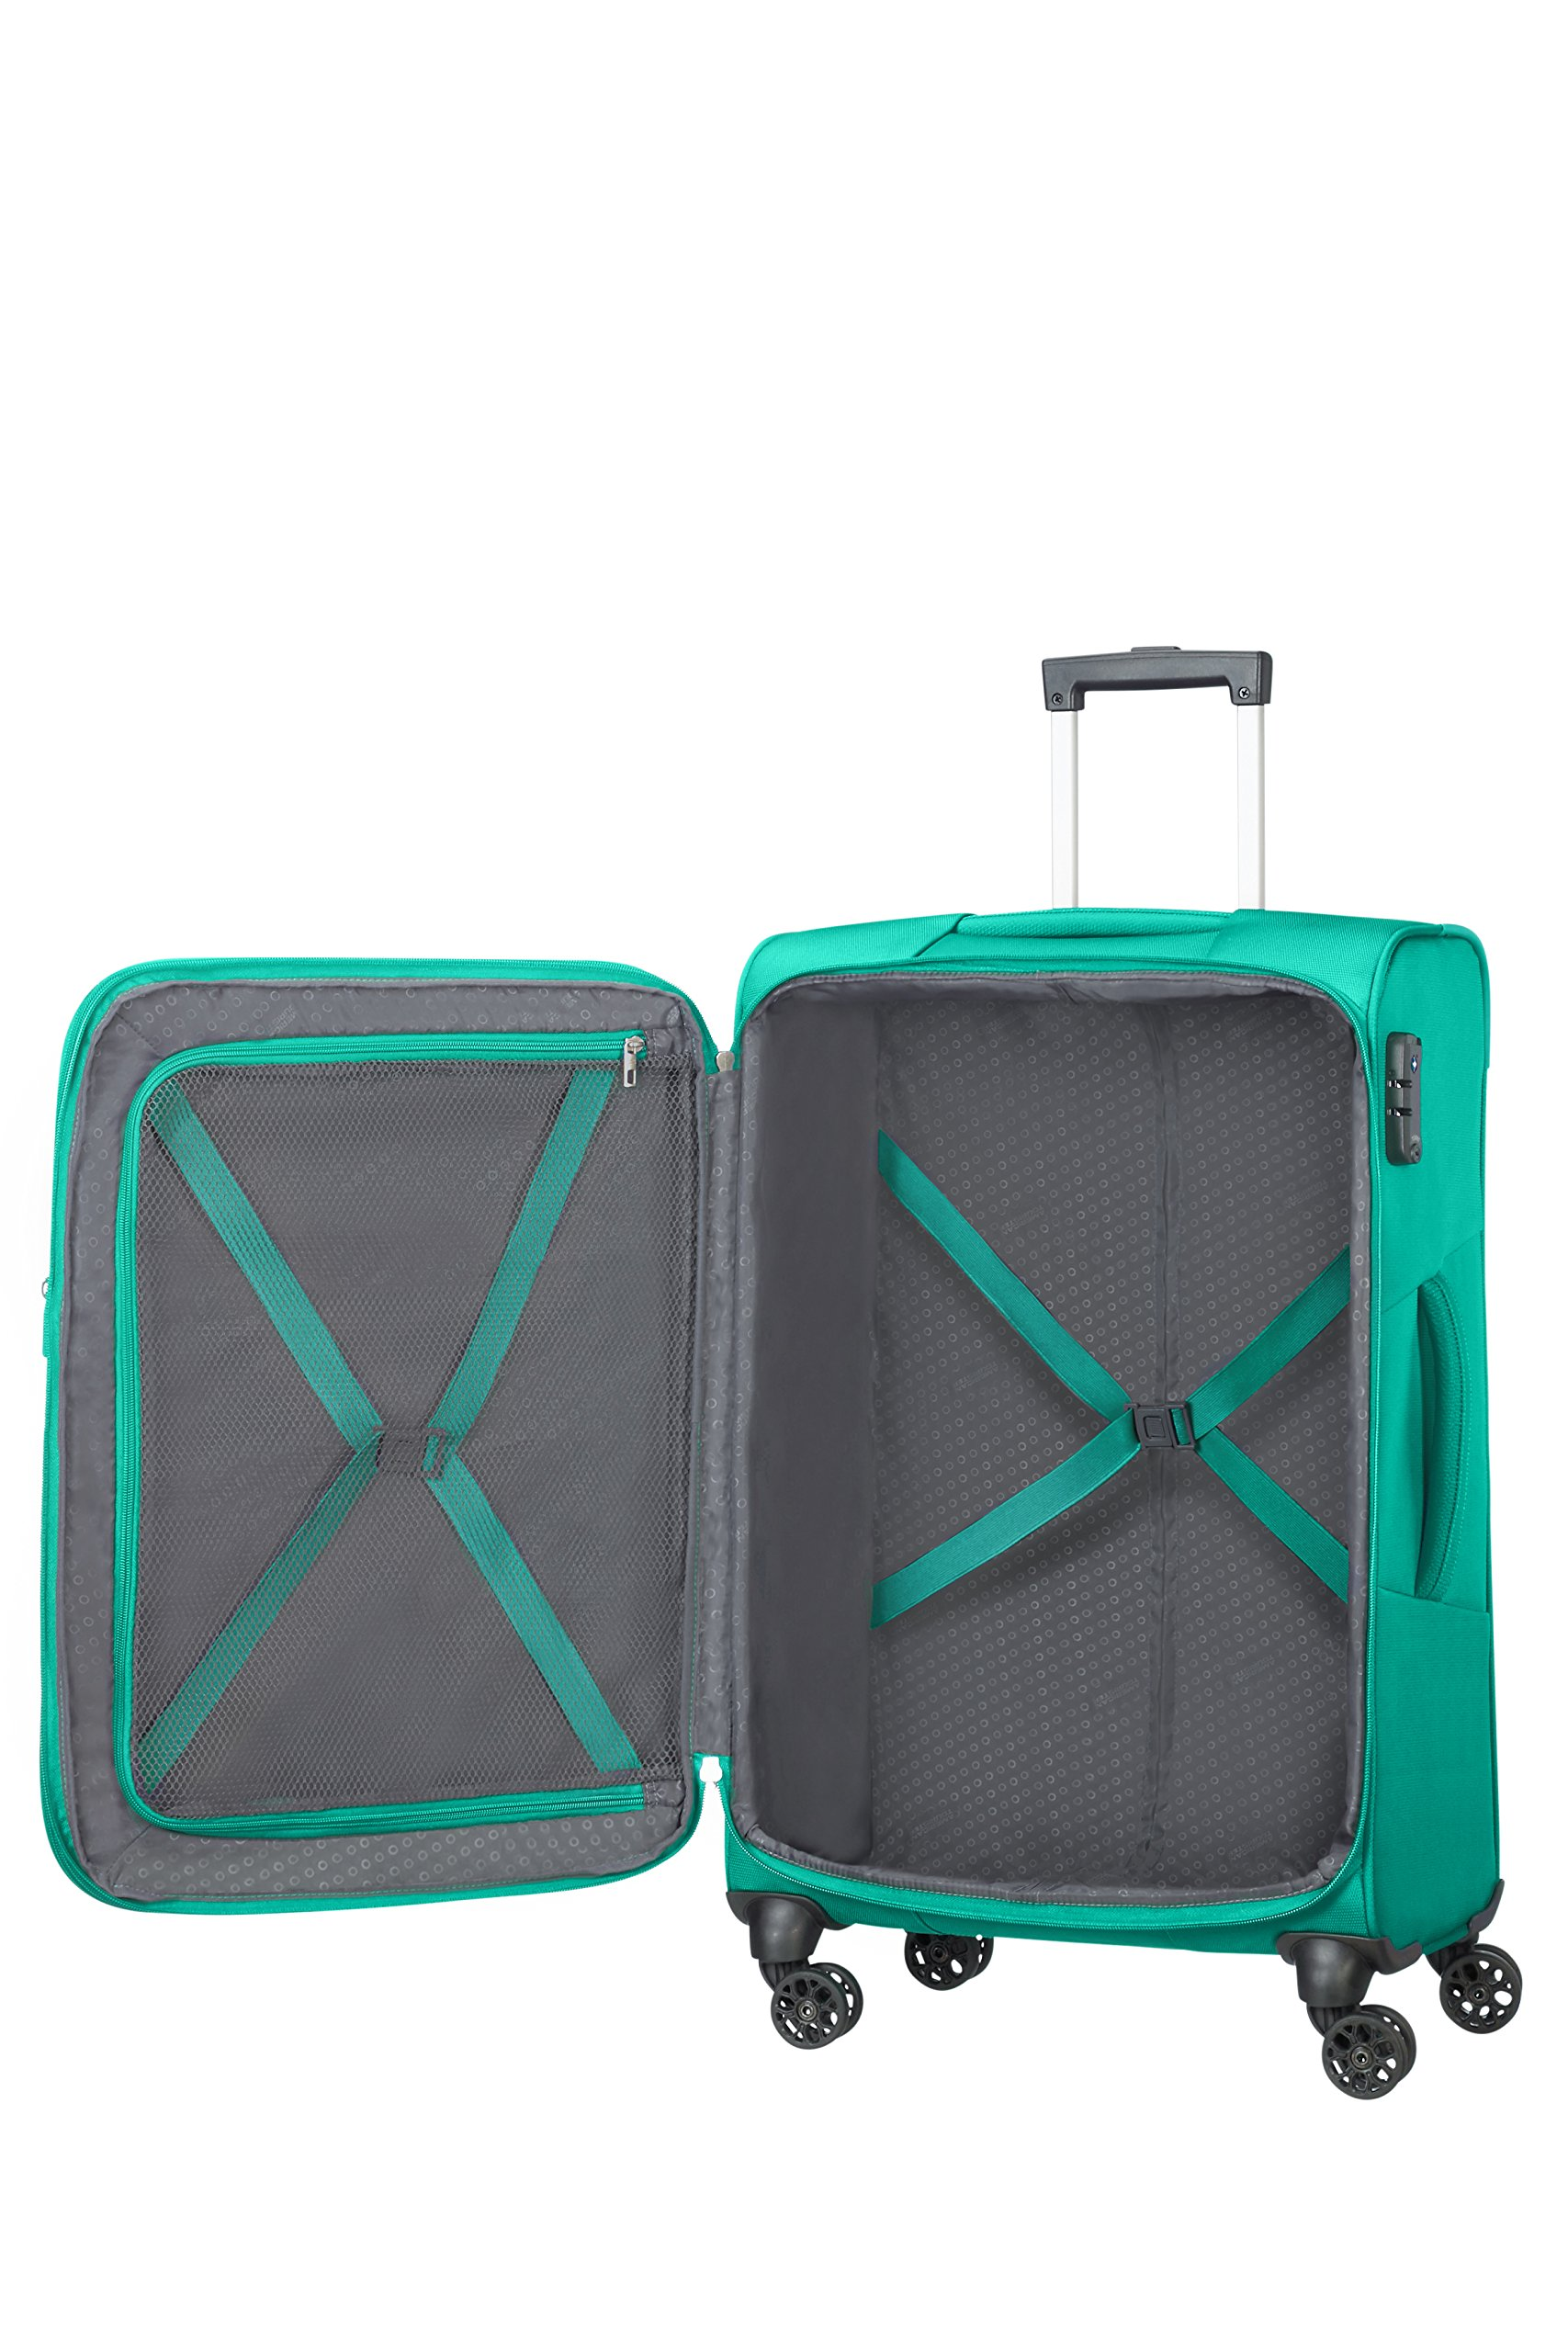 American-Tourister-Summer-Voyager-Spinner-Erweiterbar-33-kg-Koffer-68-cm-675-L-Peacock-Green